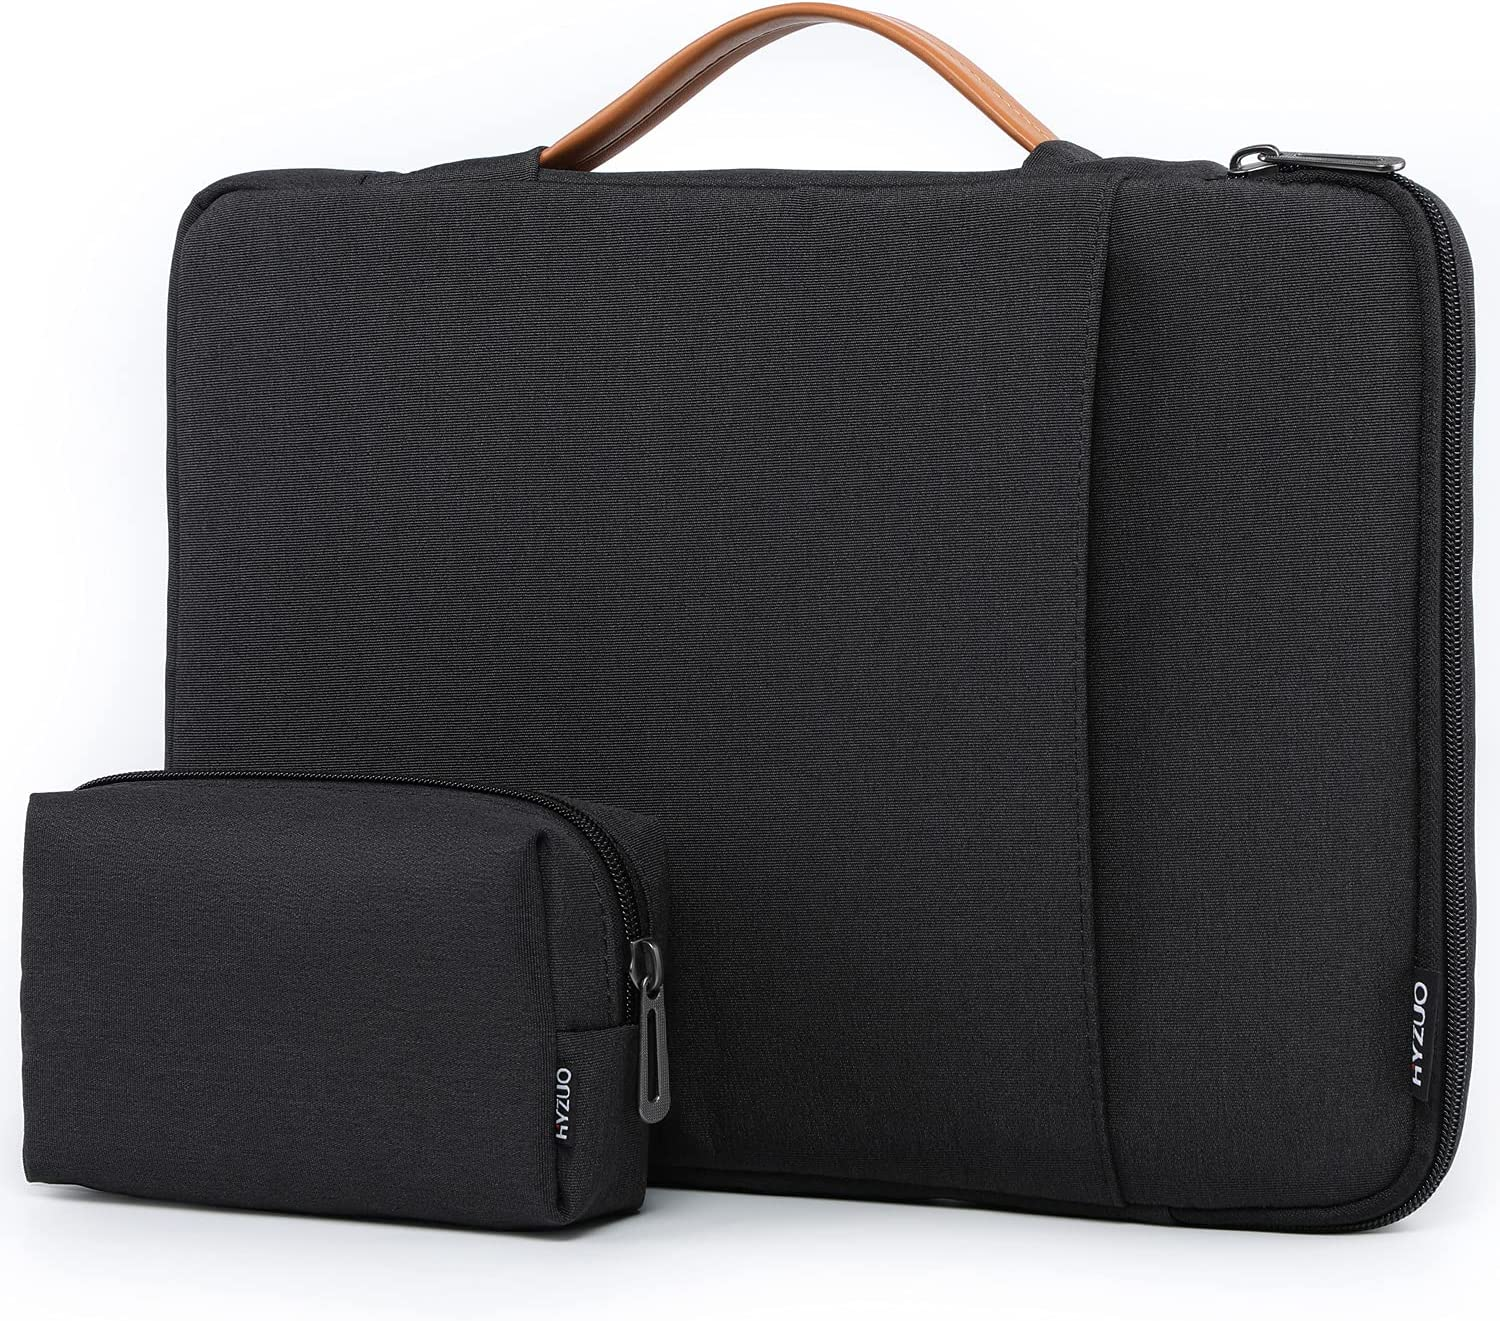 HYZUO 13-13.5 Inch 360° Protective Laptop Sleeve Handbag Compatible with MacBook Air 13 M1/MacBook Pro 13 M1/13.5 Surface Laptop 4 3/Dell XPS 13/Dell Inspiron 13/HP Envy 13/HP Spectre x360 13, Black